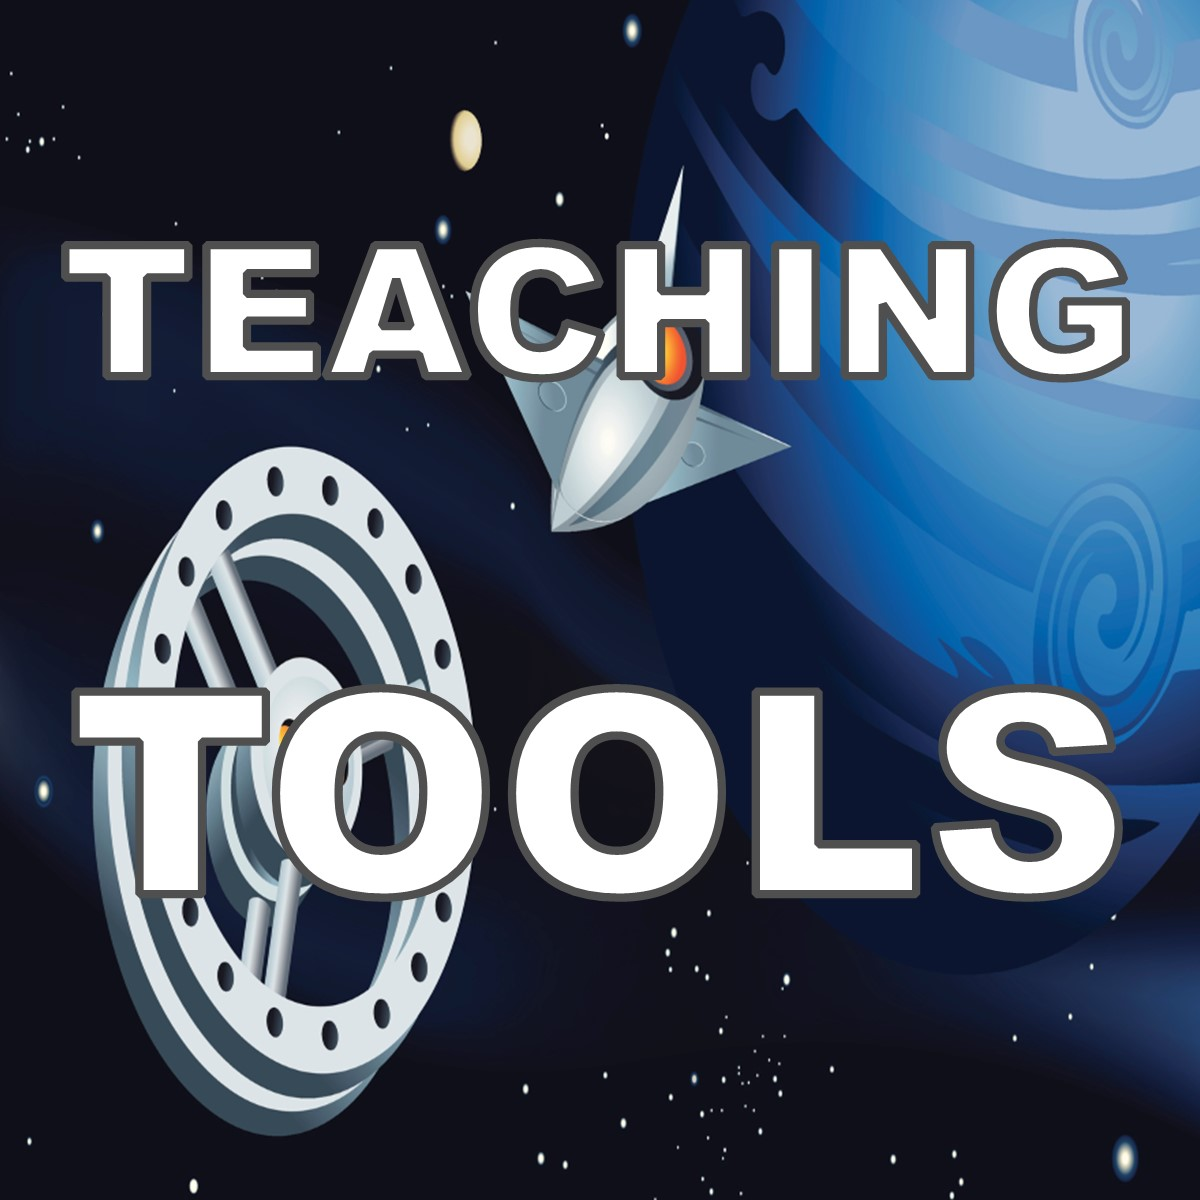 teaching-tools2.jpg